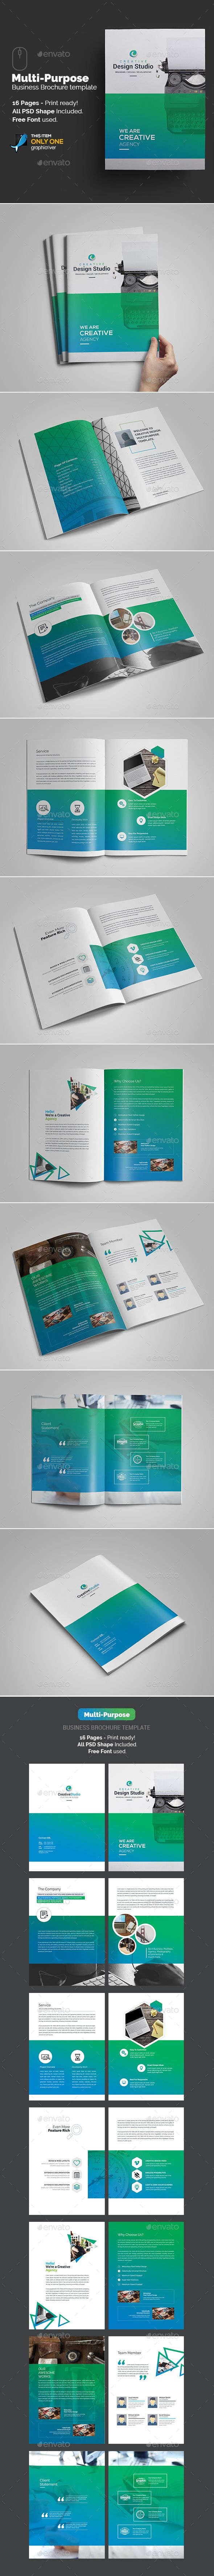 MultiPurpose Agency Brochure Template #photoshop #psd #standard #green • Download ➝ https://graphicriver.net/item/multipurpose-agency-brochure-template/18725980?ref=pxcr